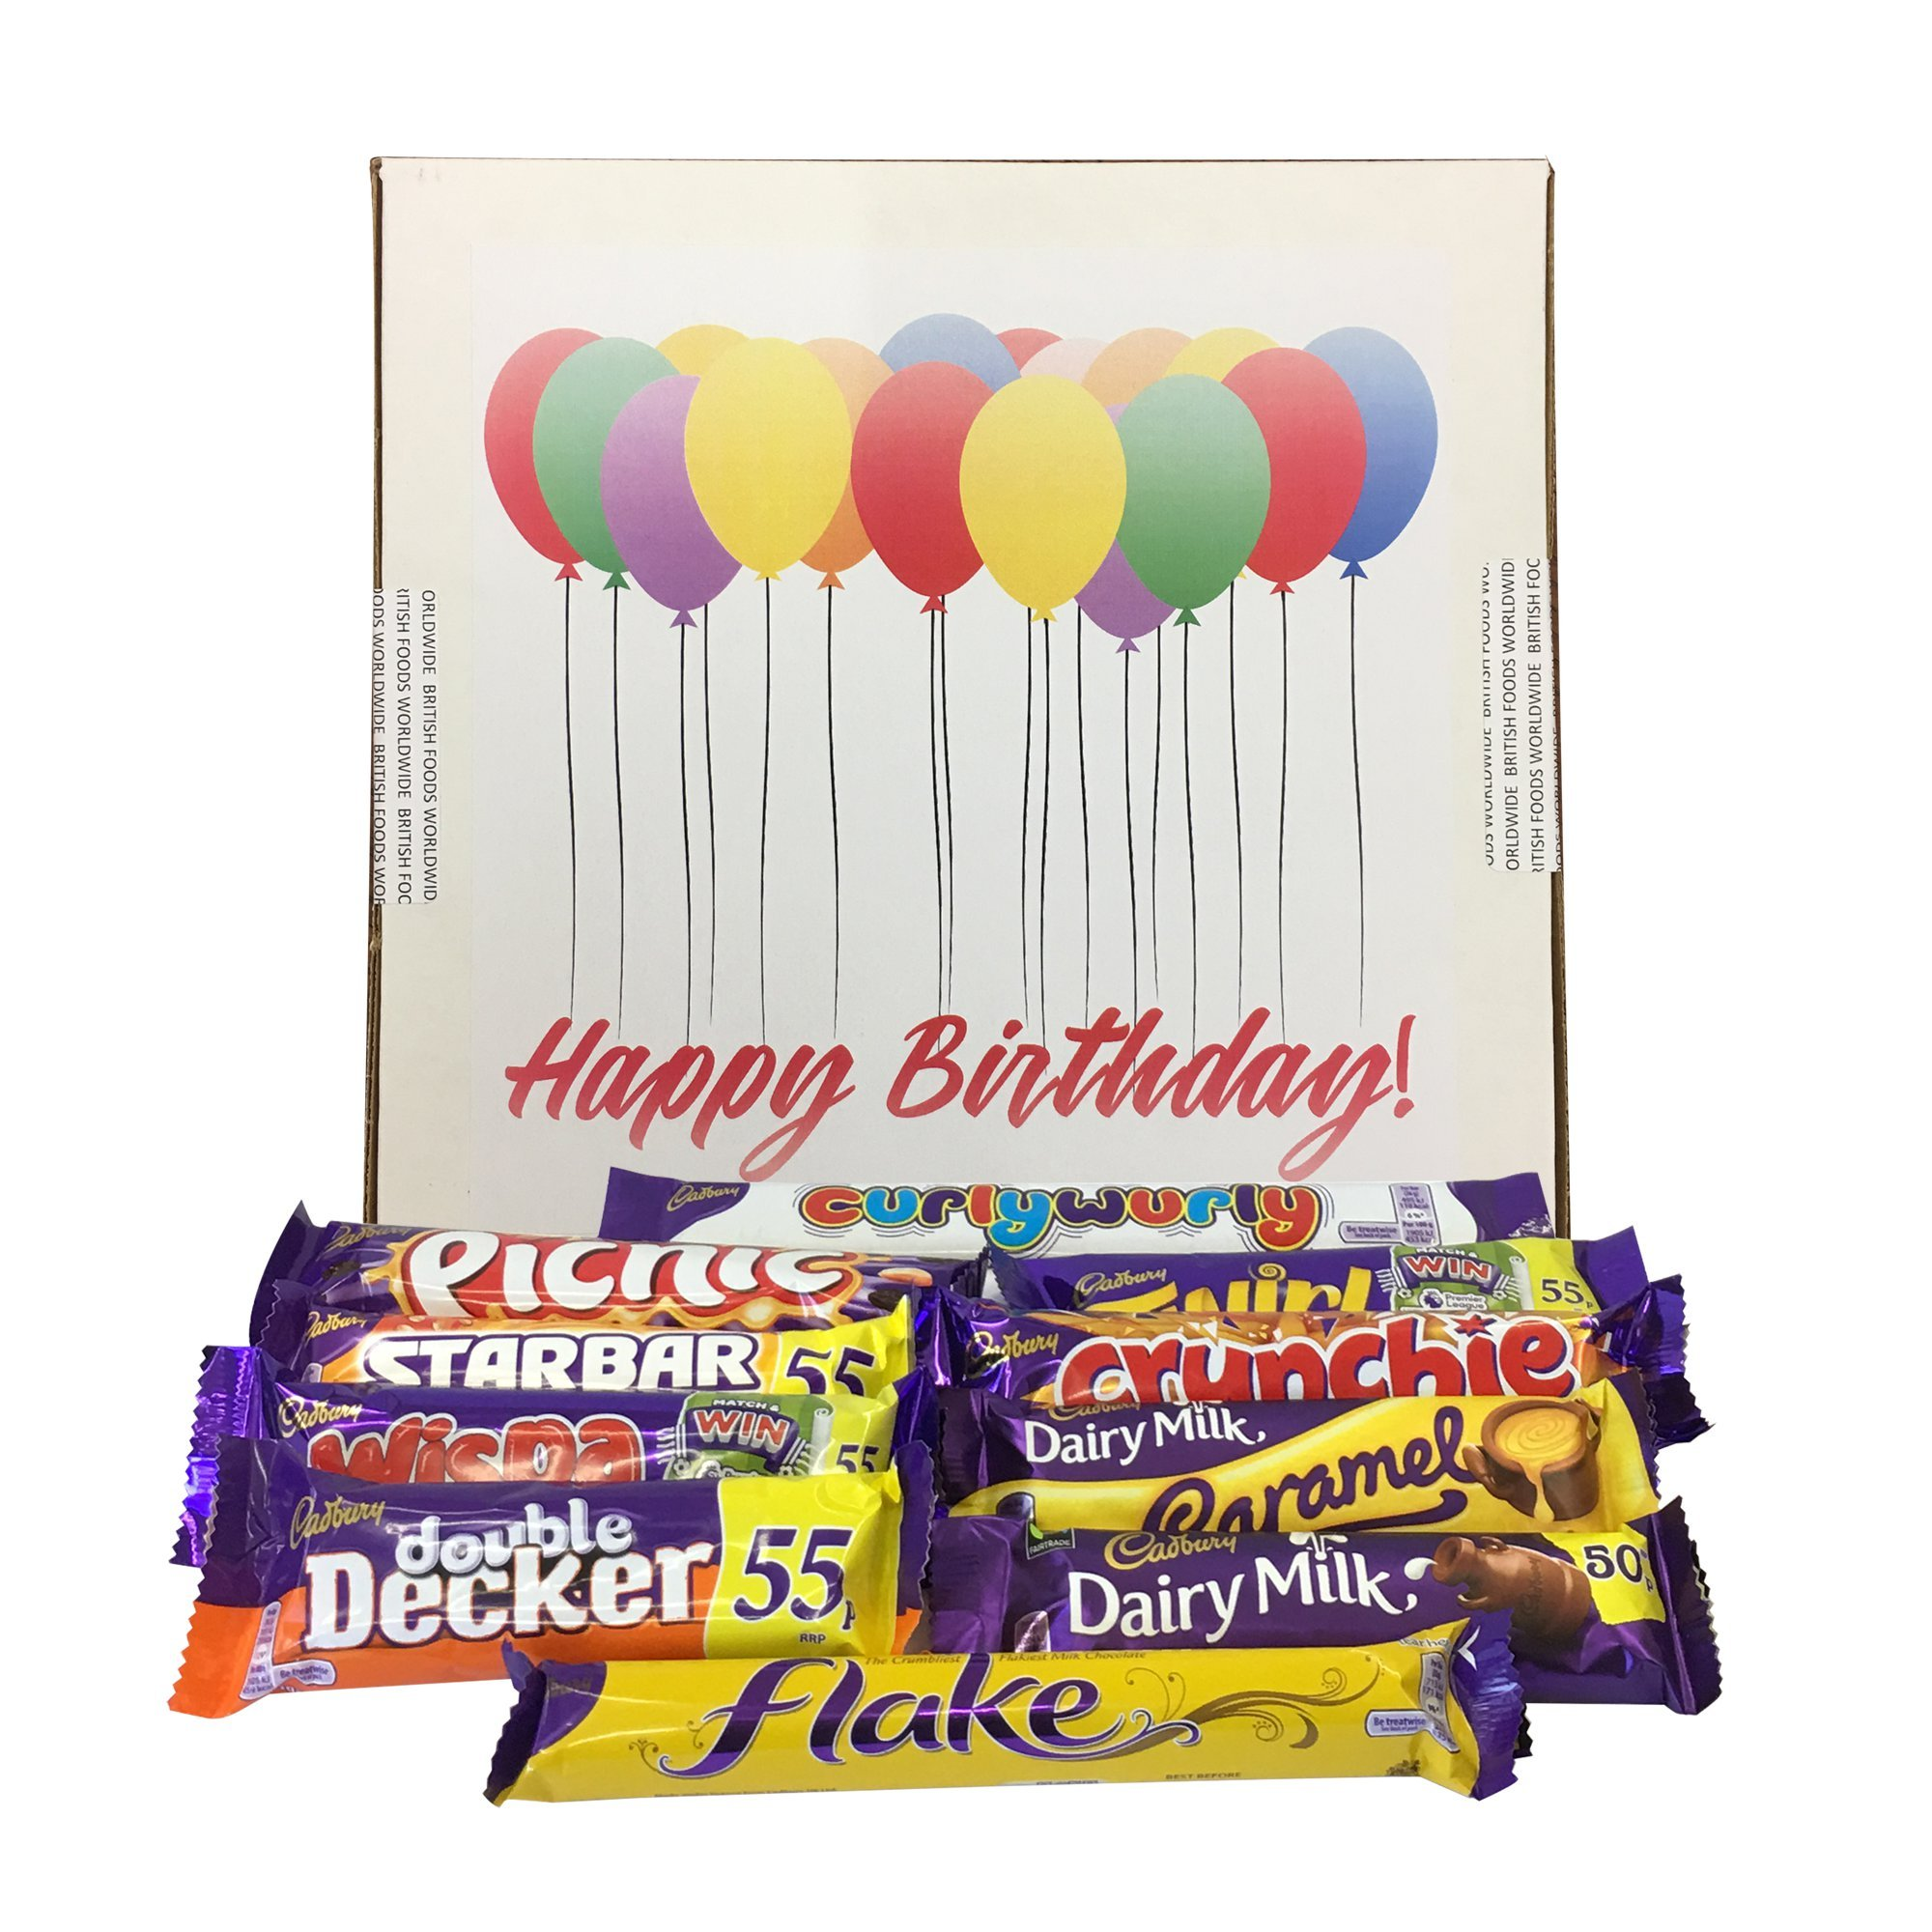 Cadbury British Chocolate Birthday Gift Box & Personalised Card by British Foods Worldwide